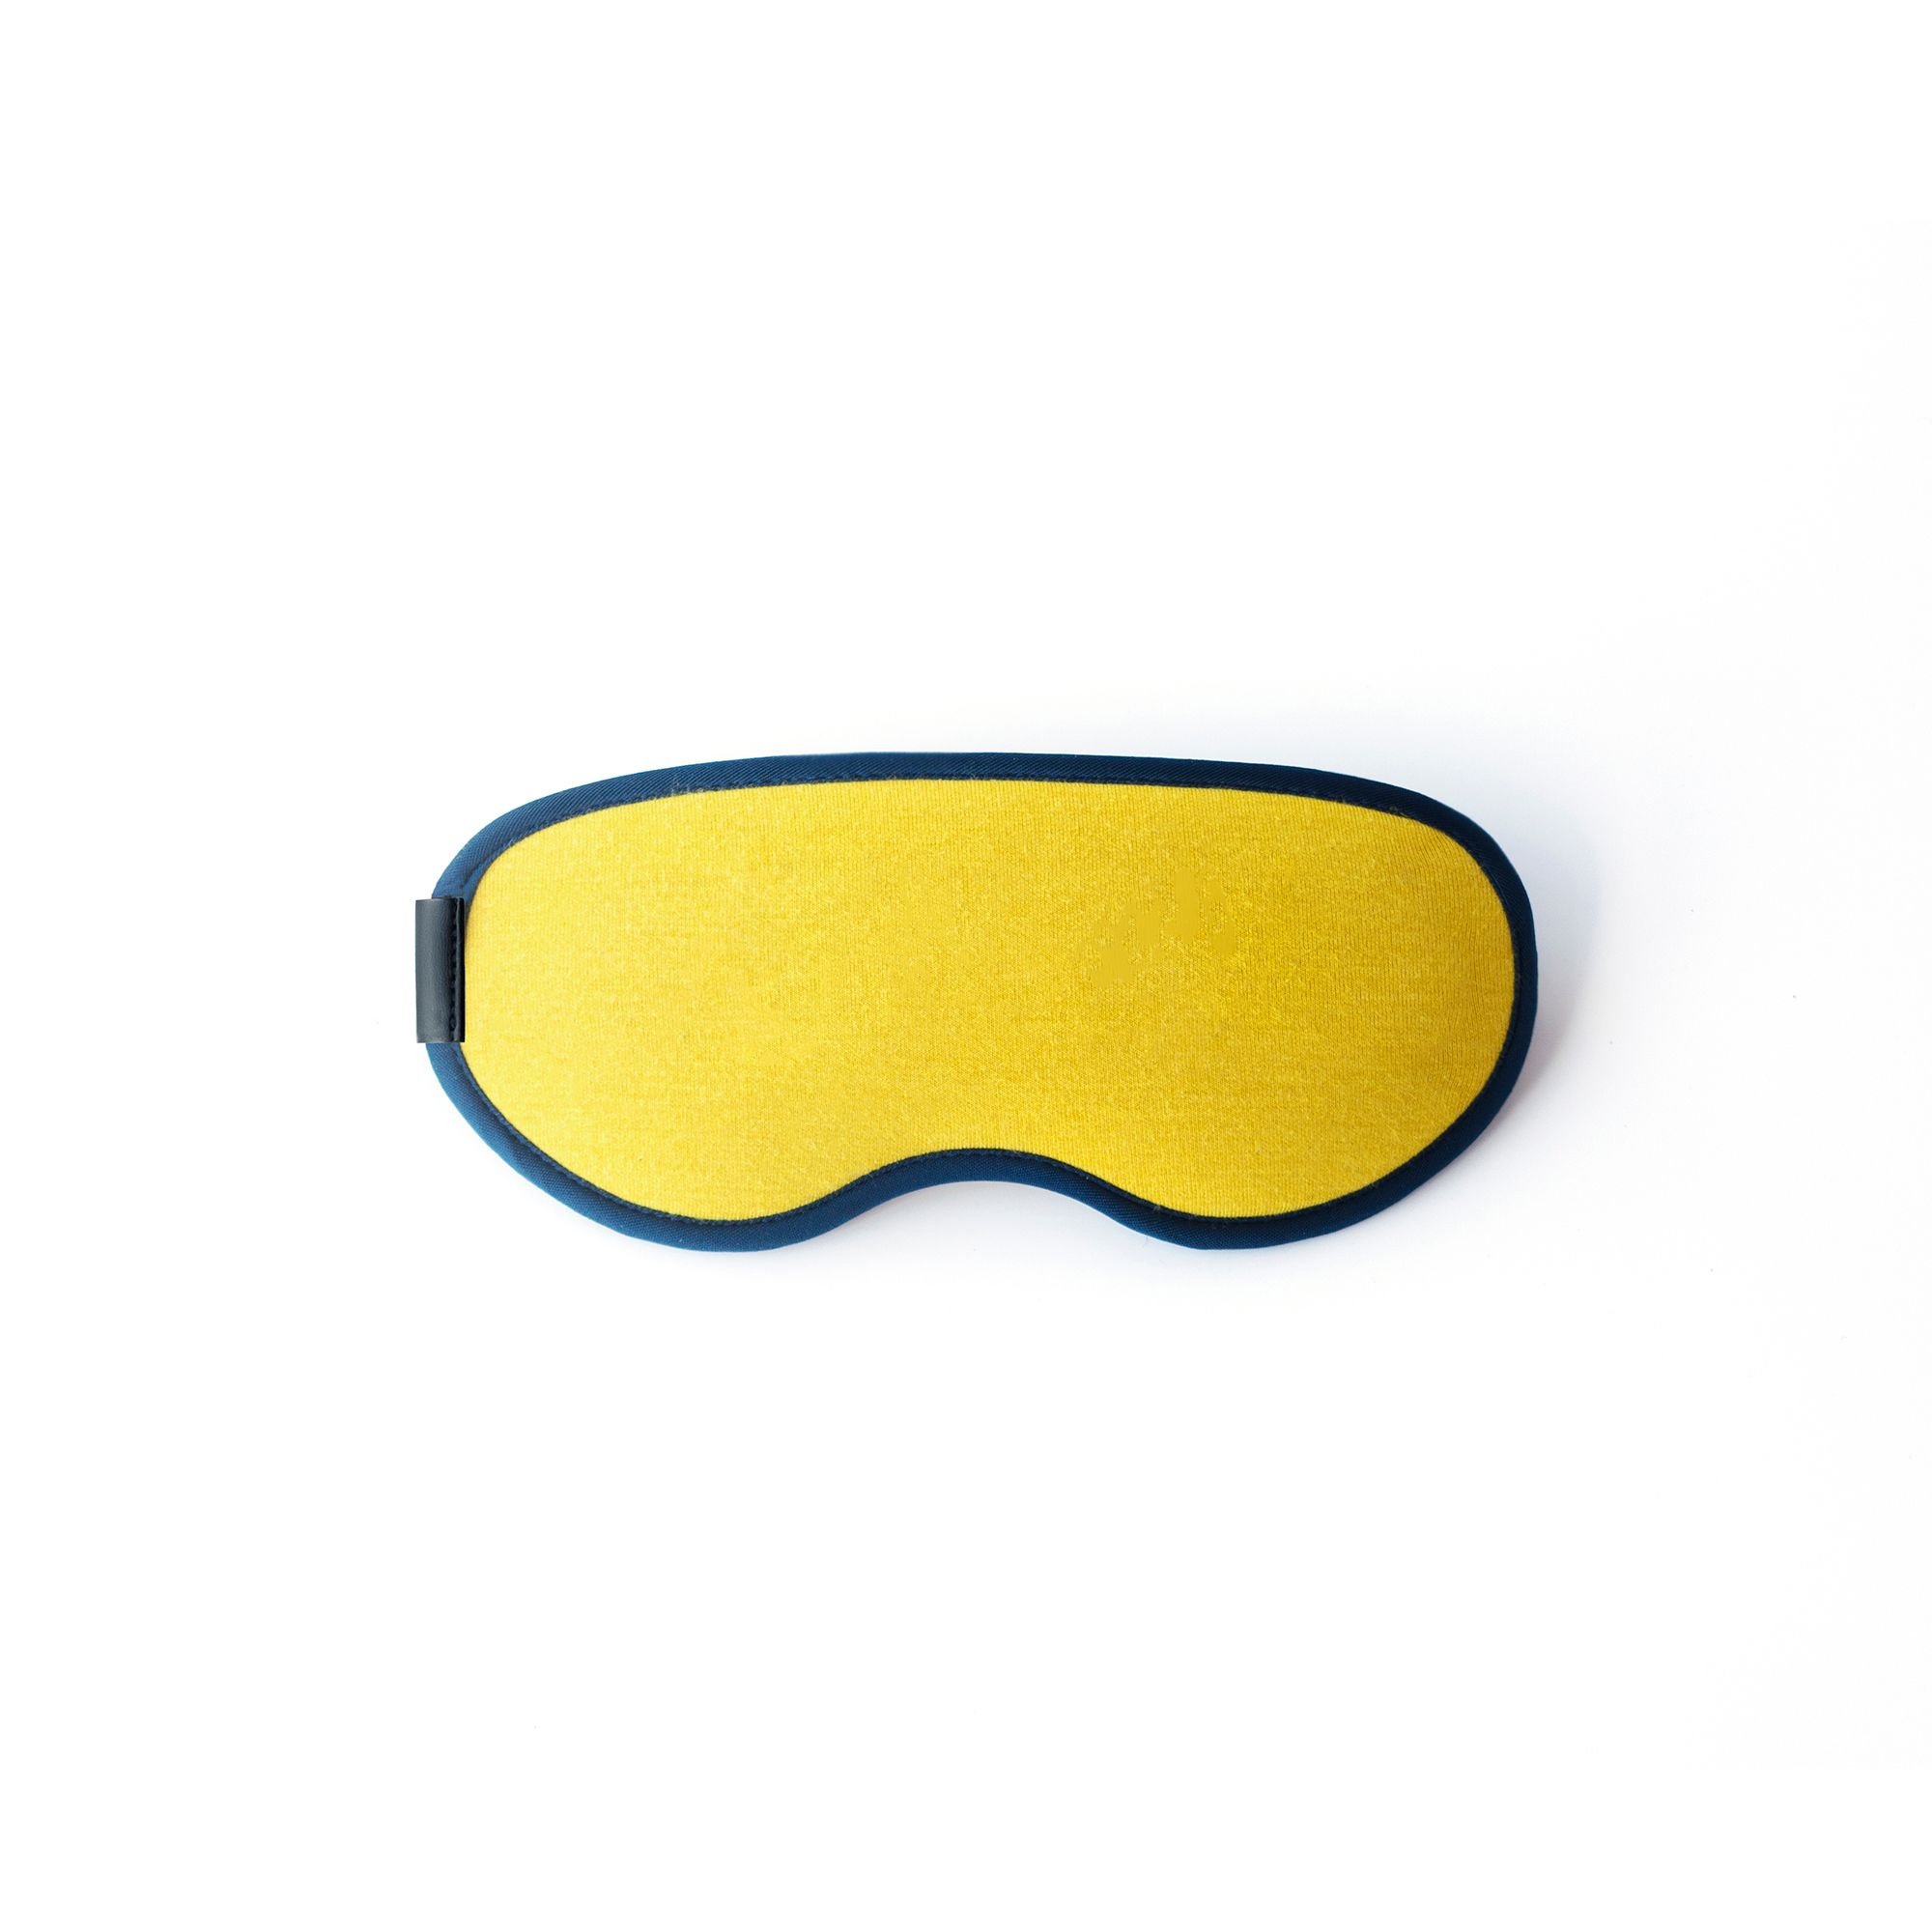 product image for Urban Forest Blossom Travel Eyeshade